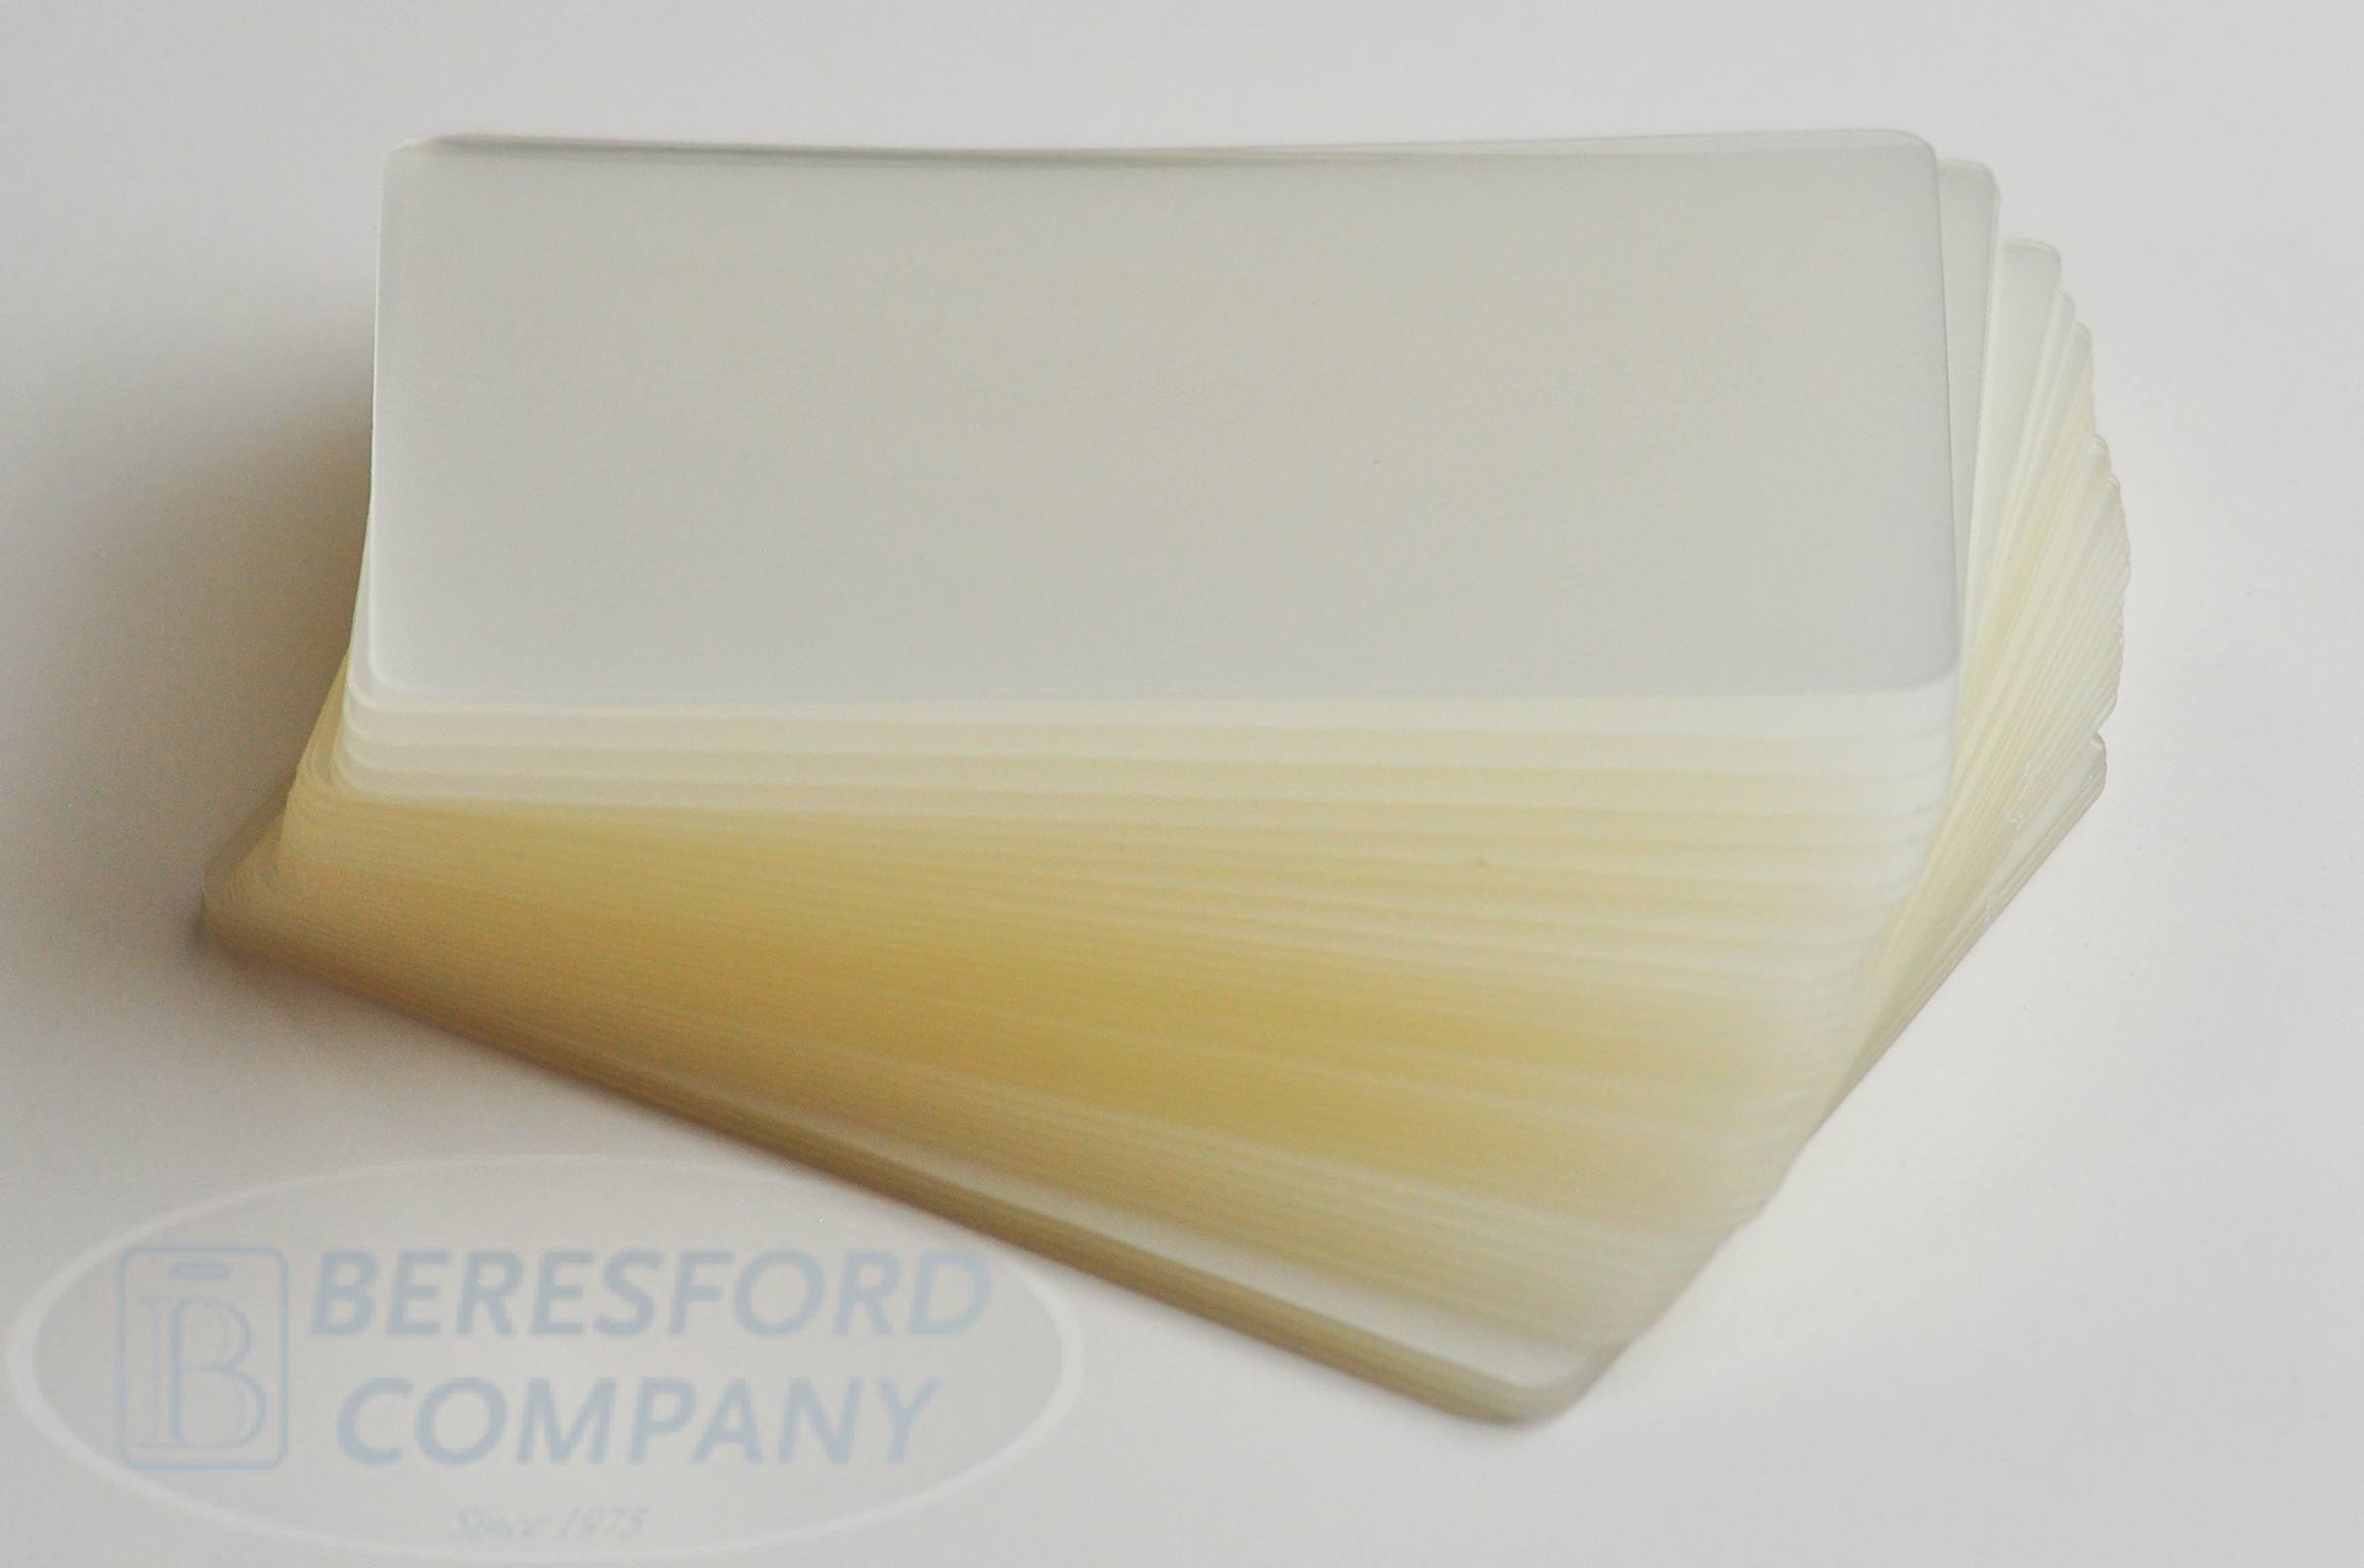 Laminating Supplies: Beresford Company